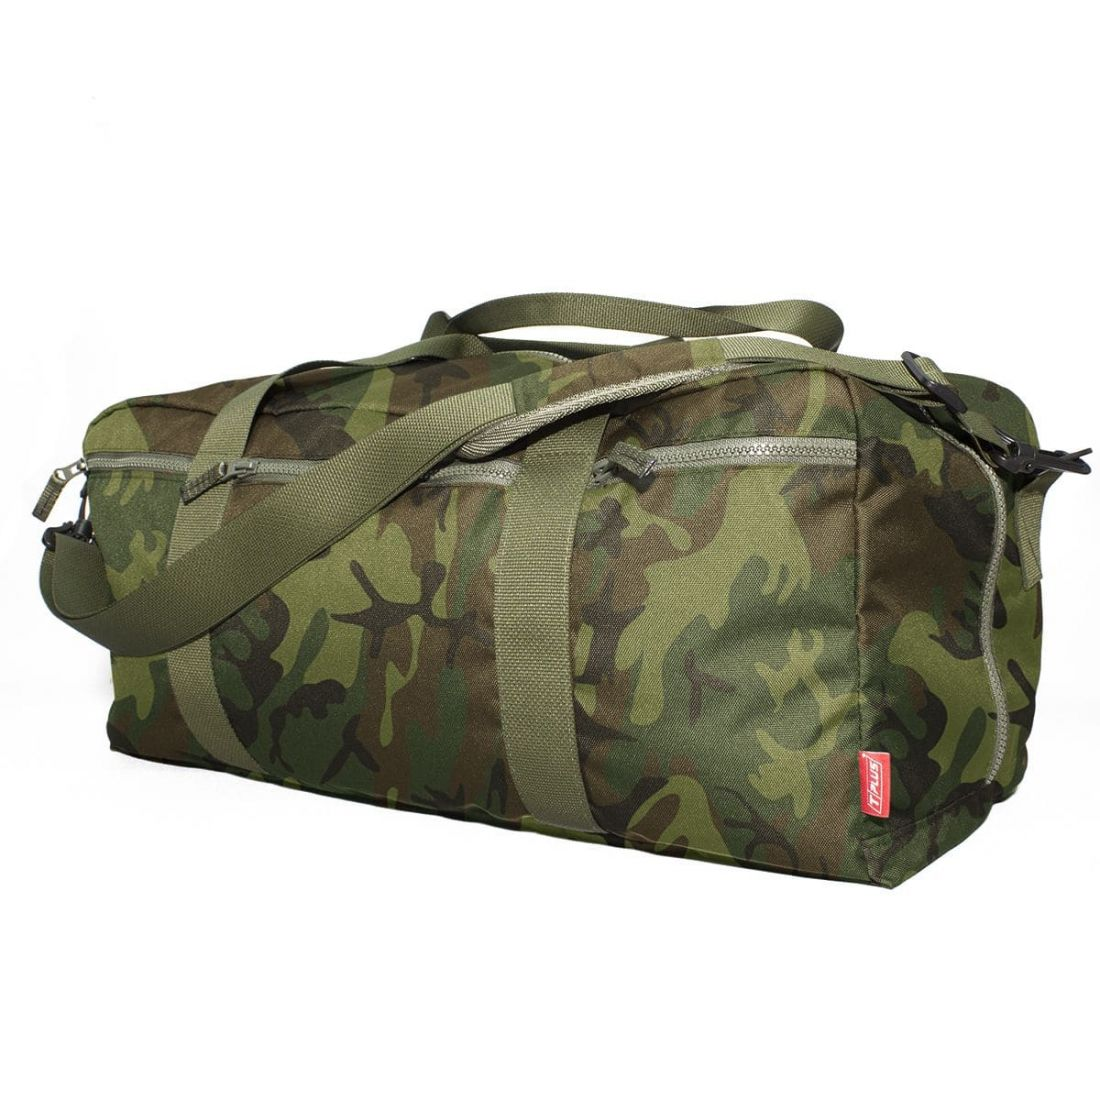 "Сумка ""Duffle Bag"" 530х270х270 мм (оксфорд 600, нато), Tplus"